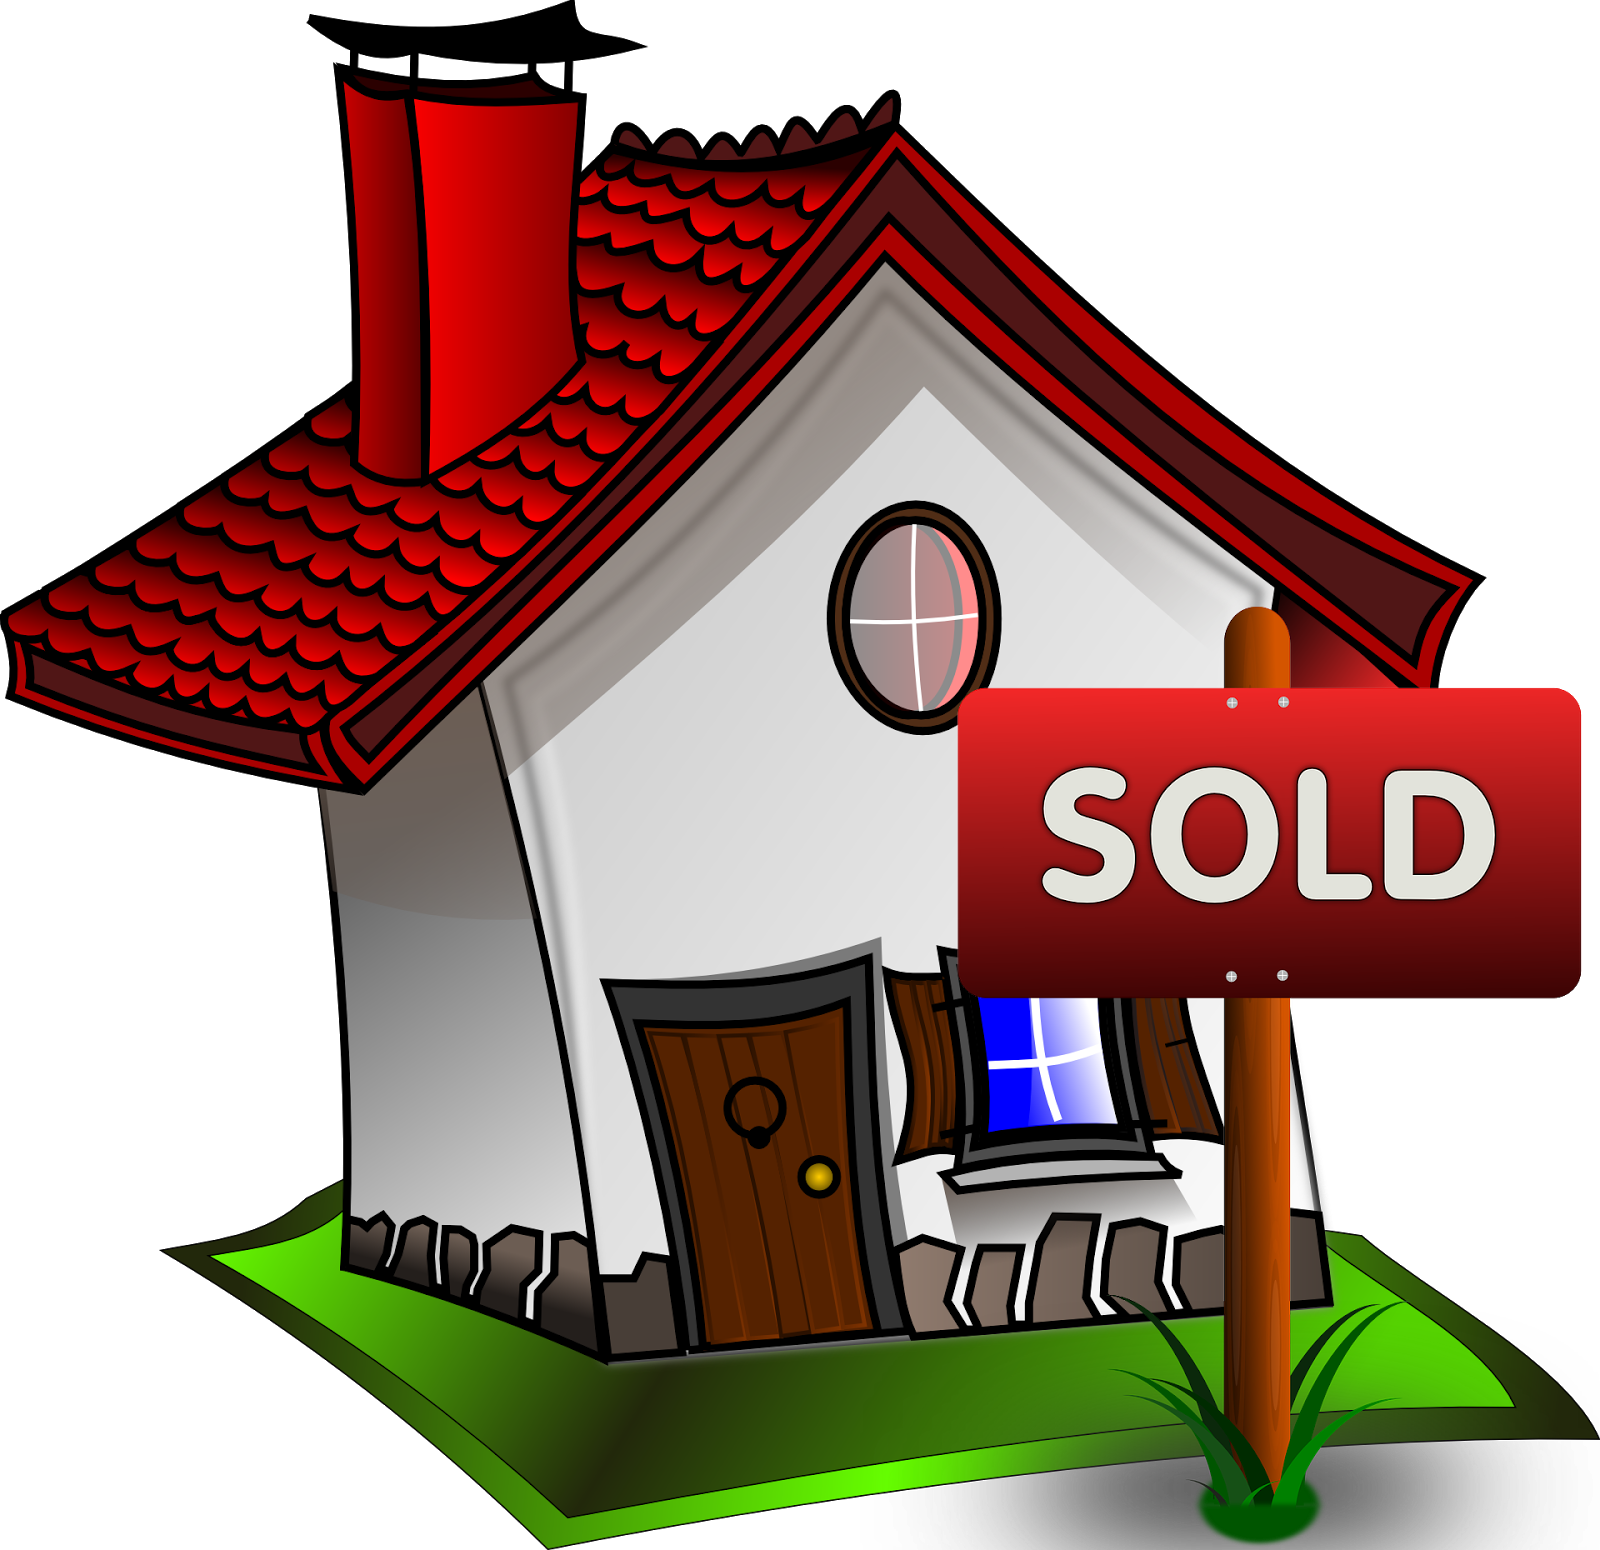 House sold png. Honest and hardworking professional